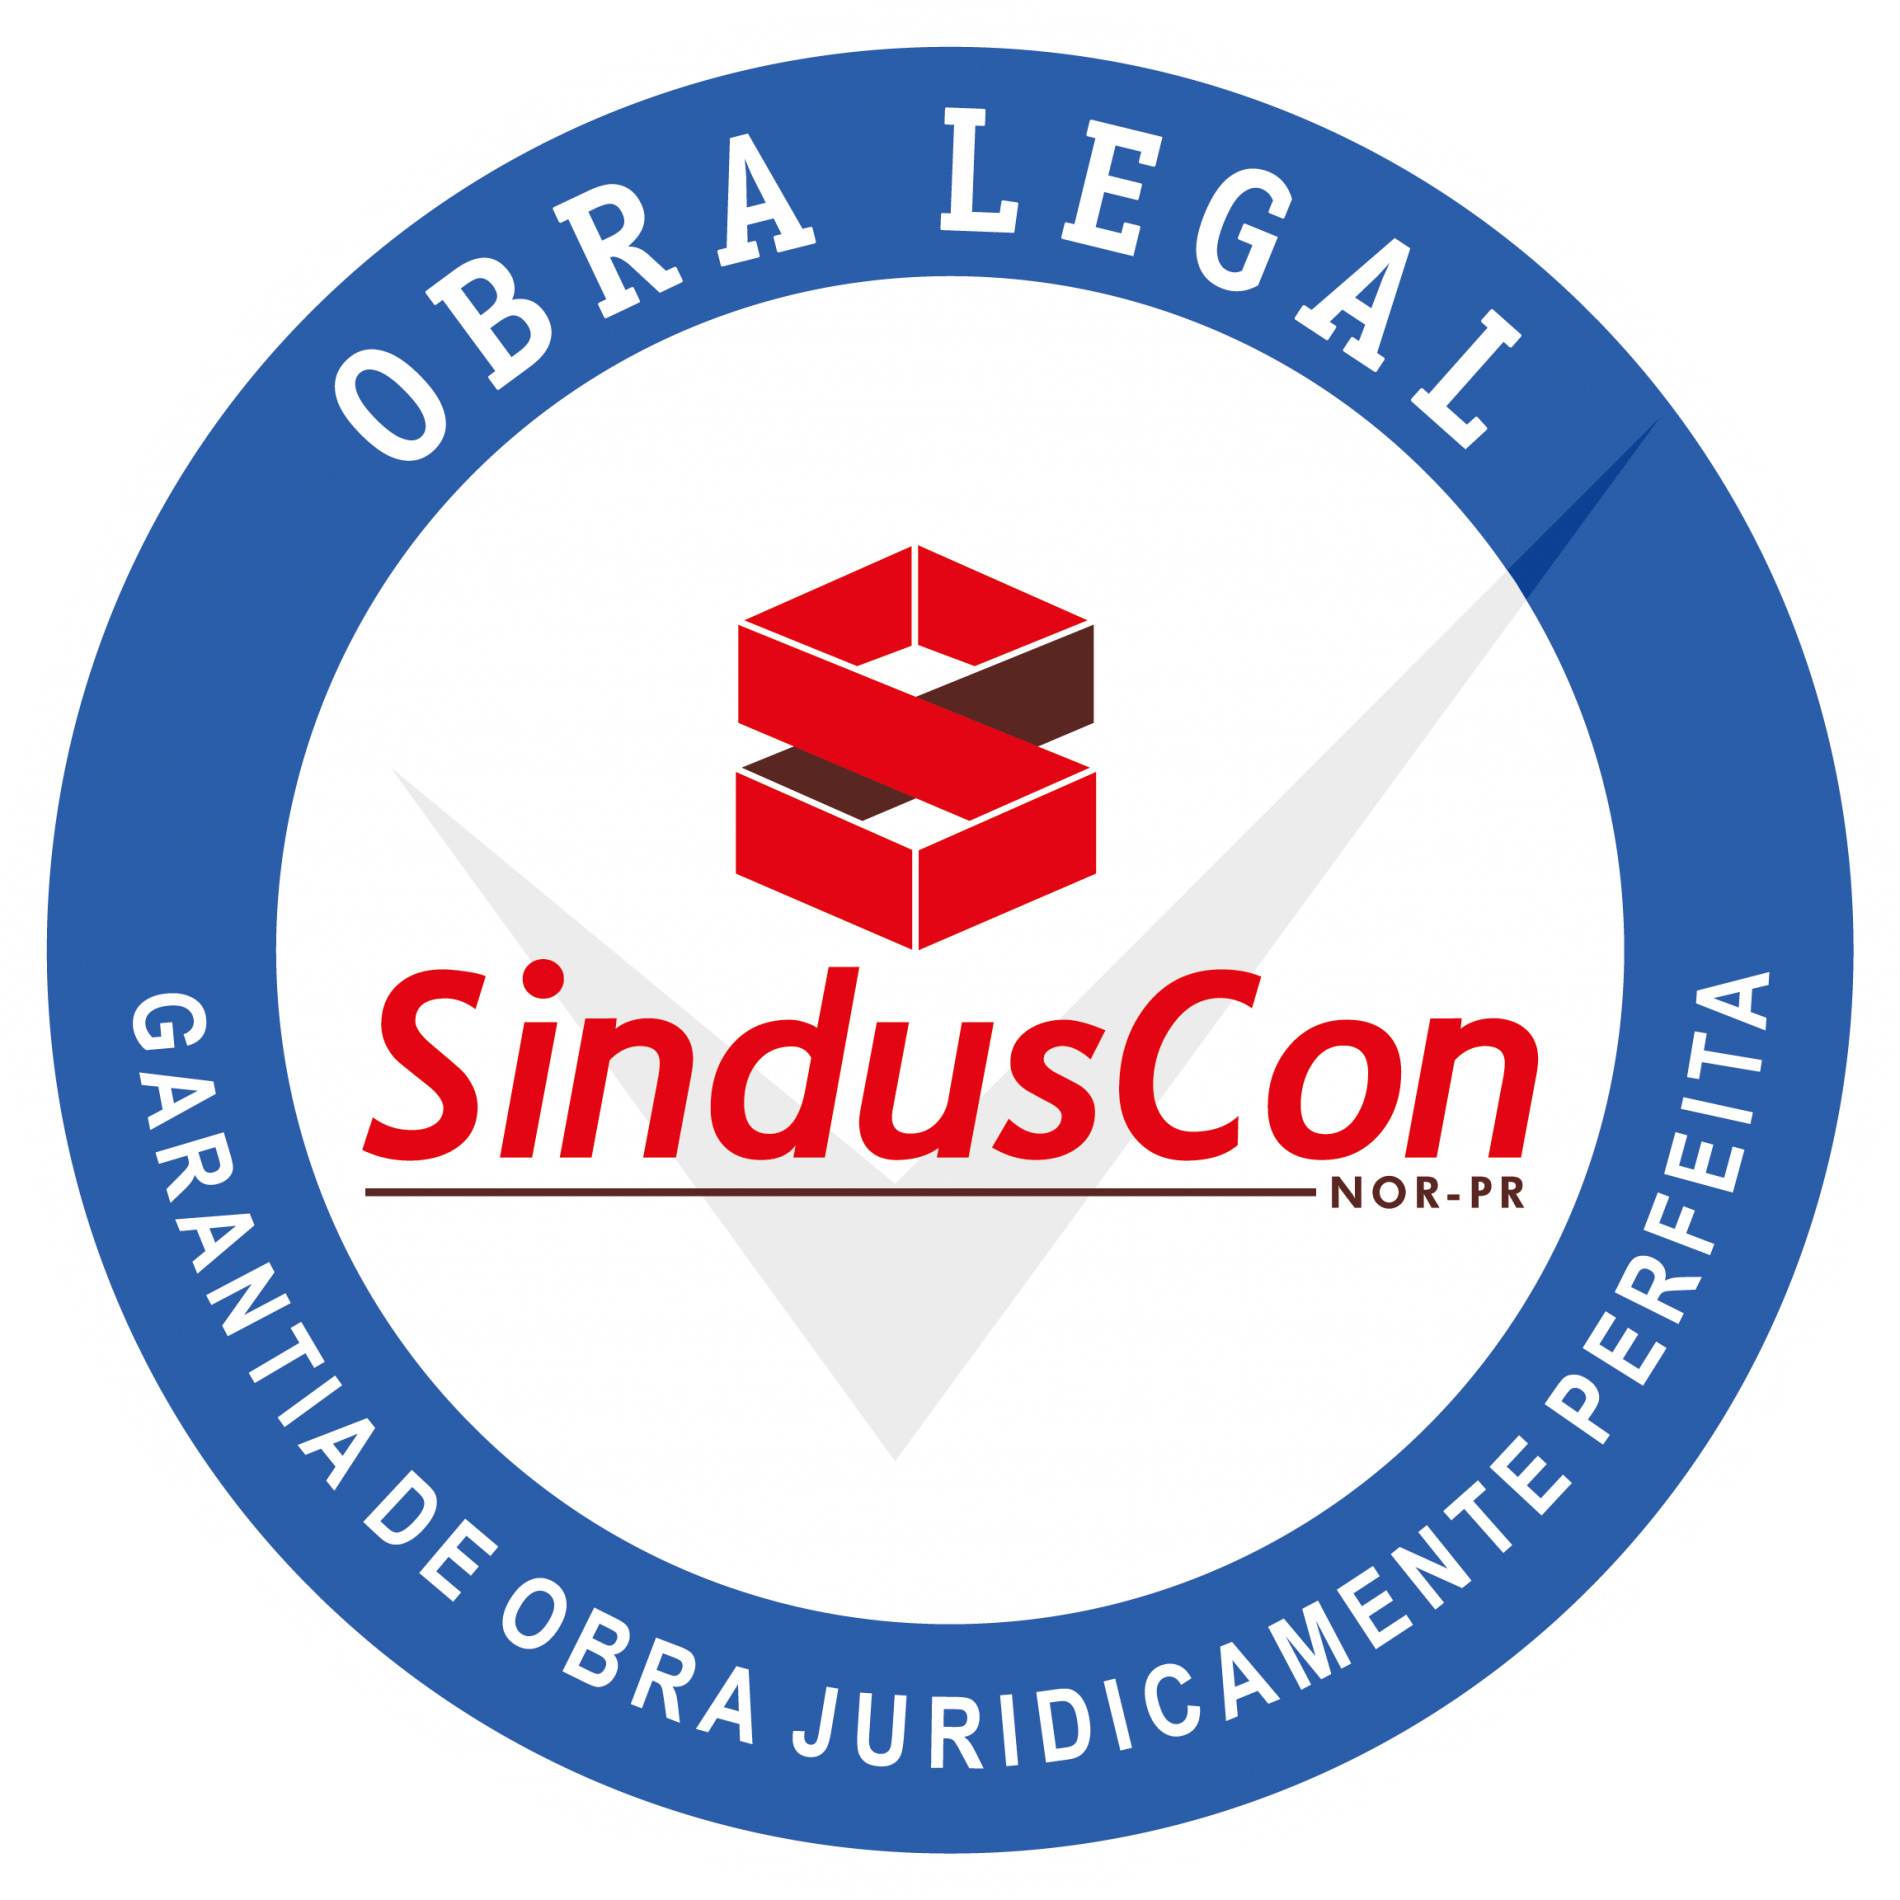 SELO OBRA LEGAL SINDUSCON